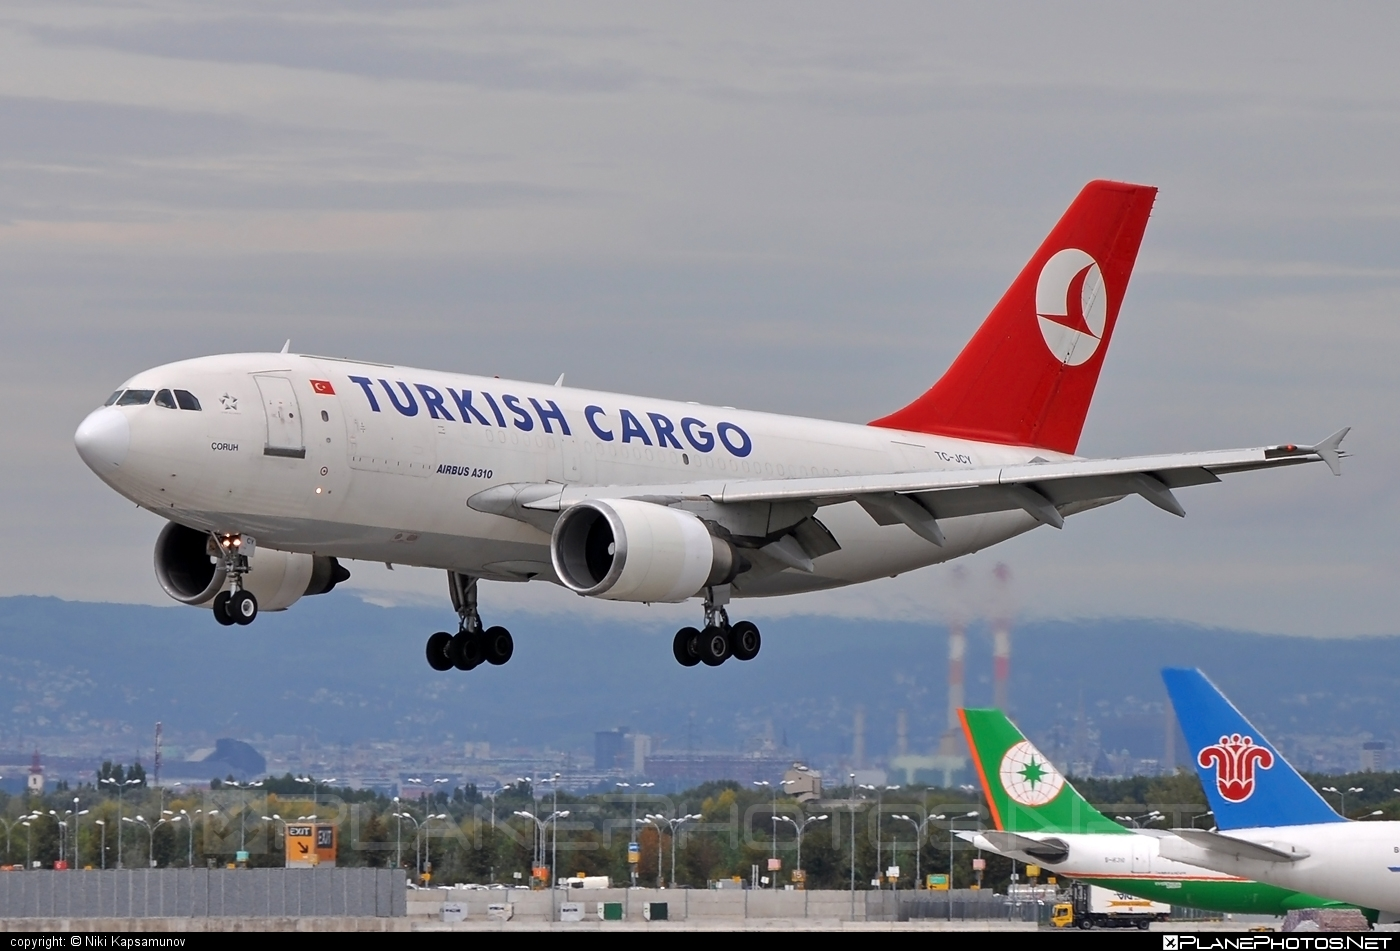 Turkish Airlines Cargo Airbus A310-304F - TC-JCY #a310 #airbus #turkishairlinescargo